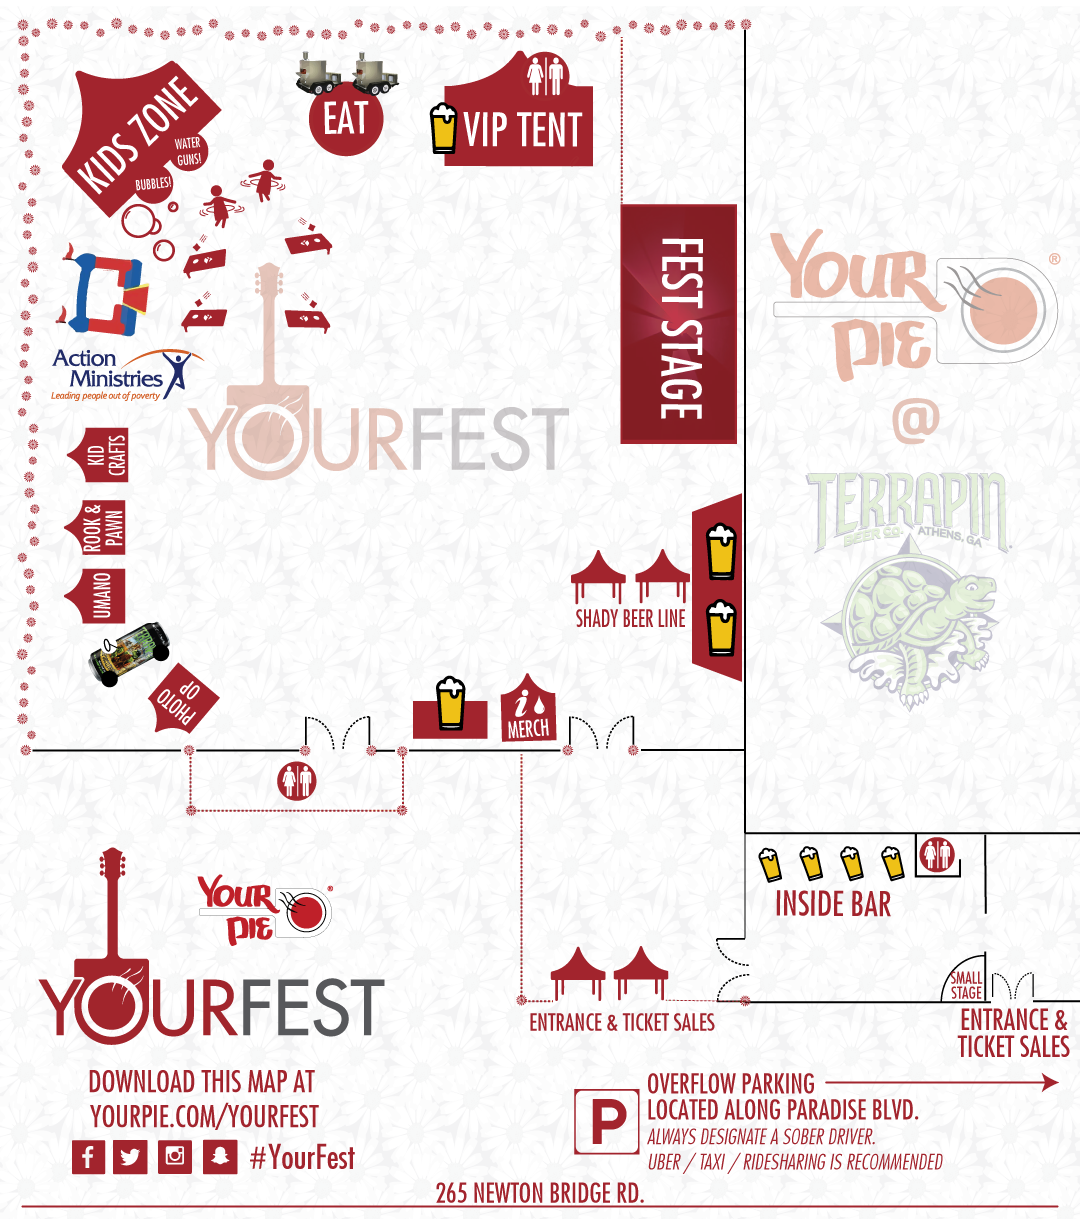 Your-Fest-Map-8.11